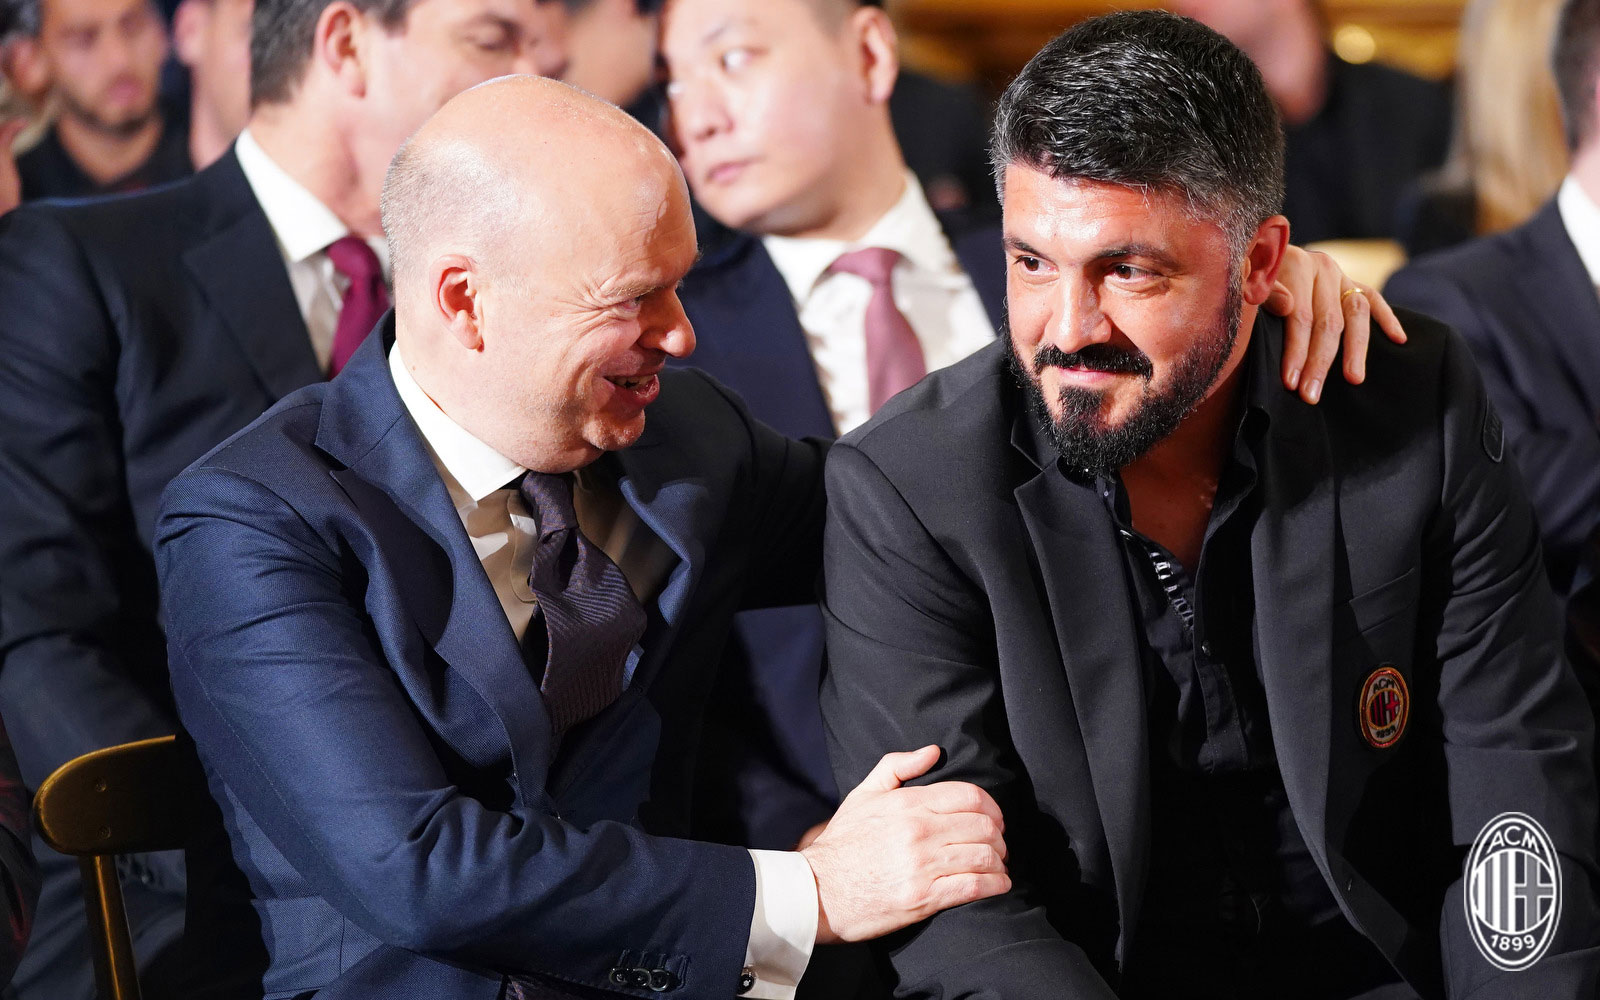 Marco Fassone and Gennaro Gattuso in Rome on May 8, 2018. (@acmilan.com)